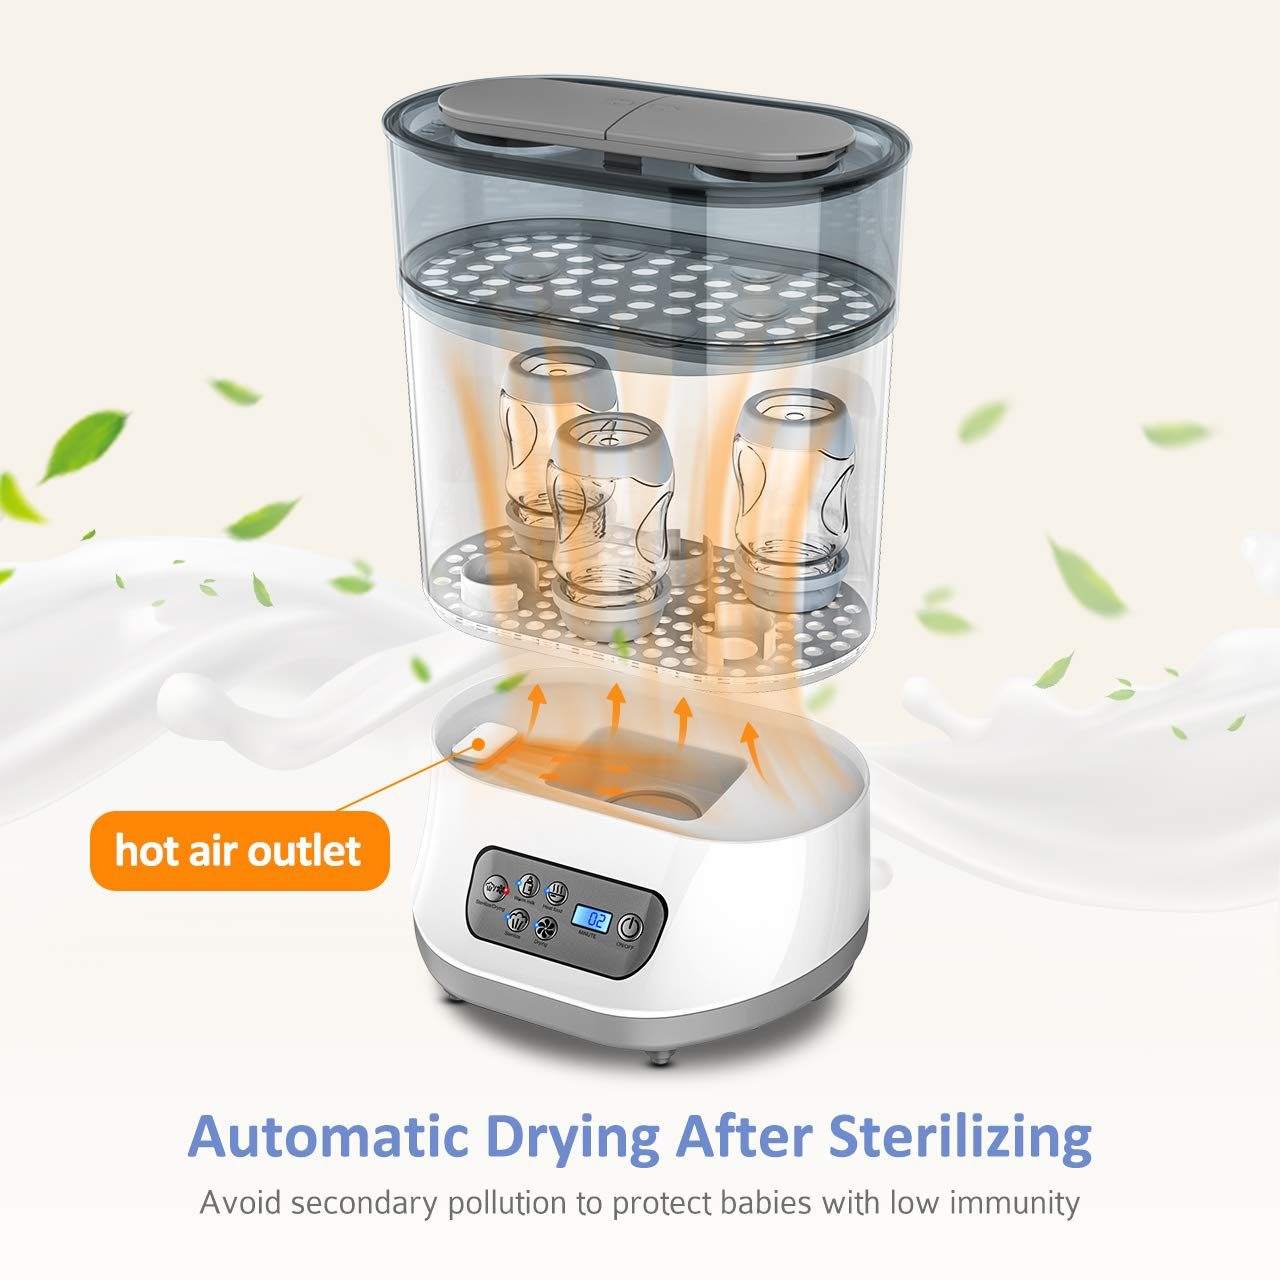 OMORC 550W Bottle Sterilizer and Dryer for Baby, 5-in-1 Multifunctional Electric Steam Sterilizer with Auto Power-off, Digital LCD Display for Sterilizing, Drying, Warming Milk, Heating Food by OMORC (Image #5)